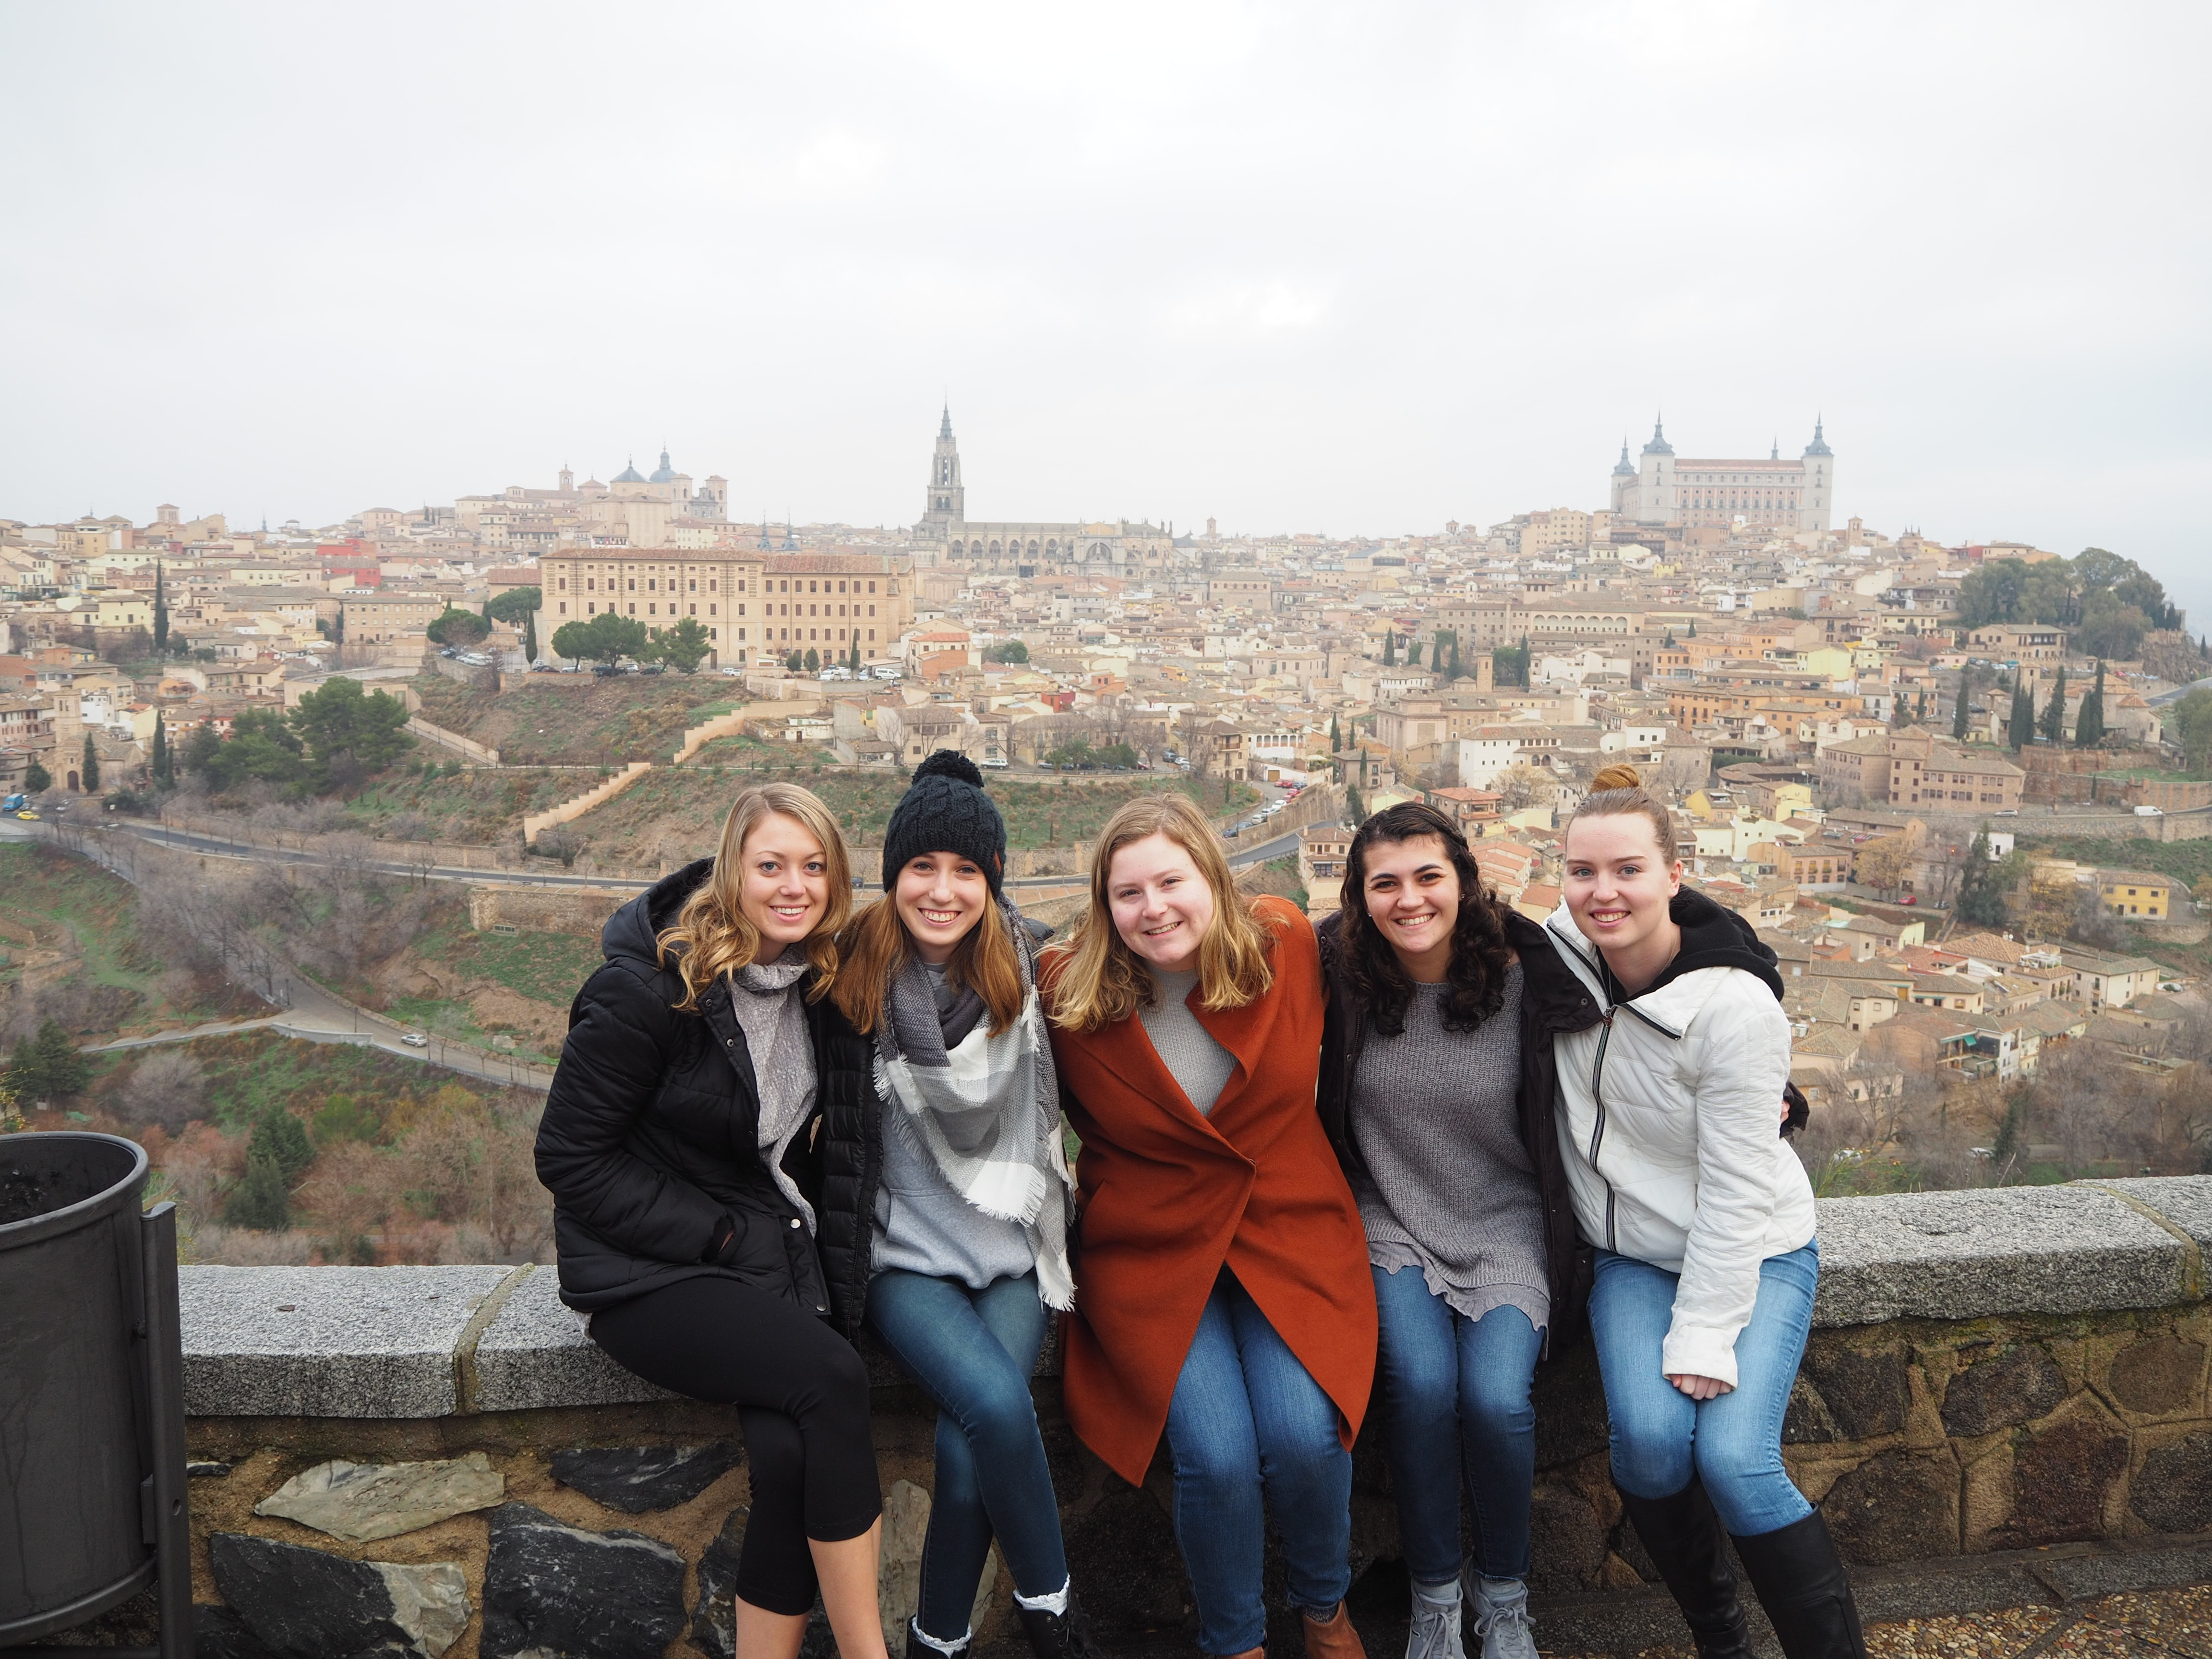 UD student teachers site seeing in Spain.